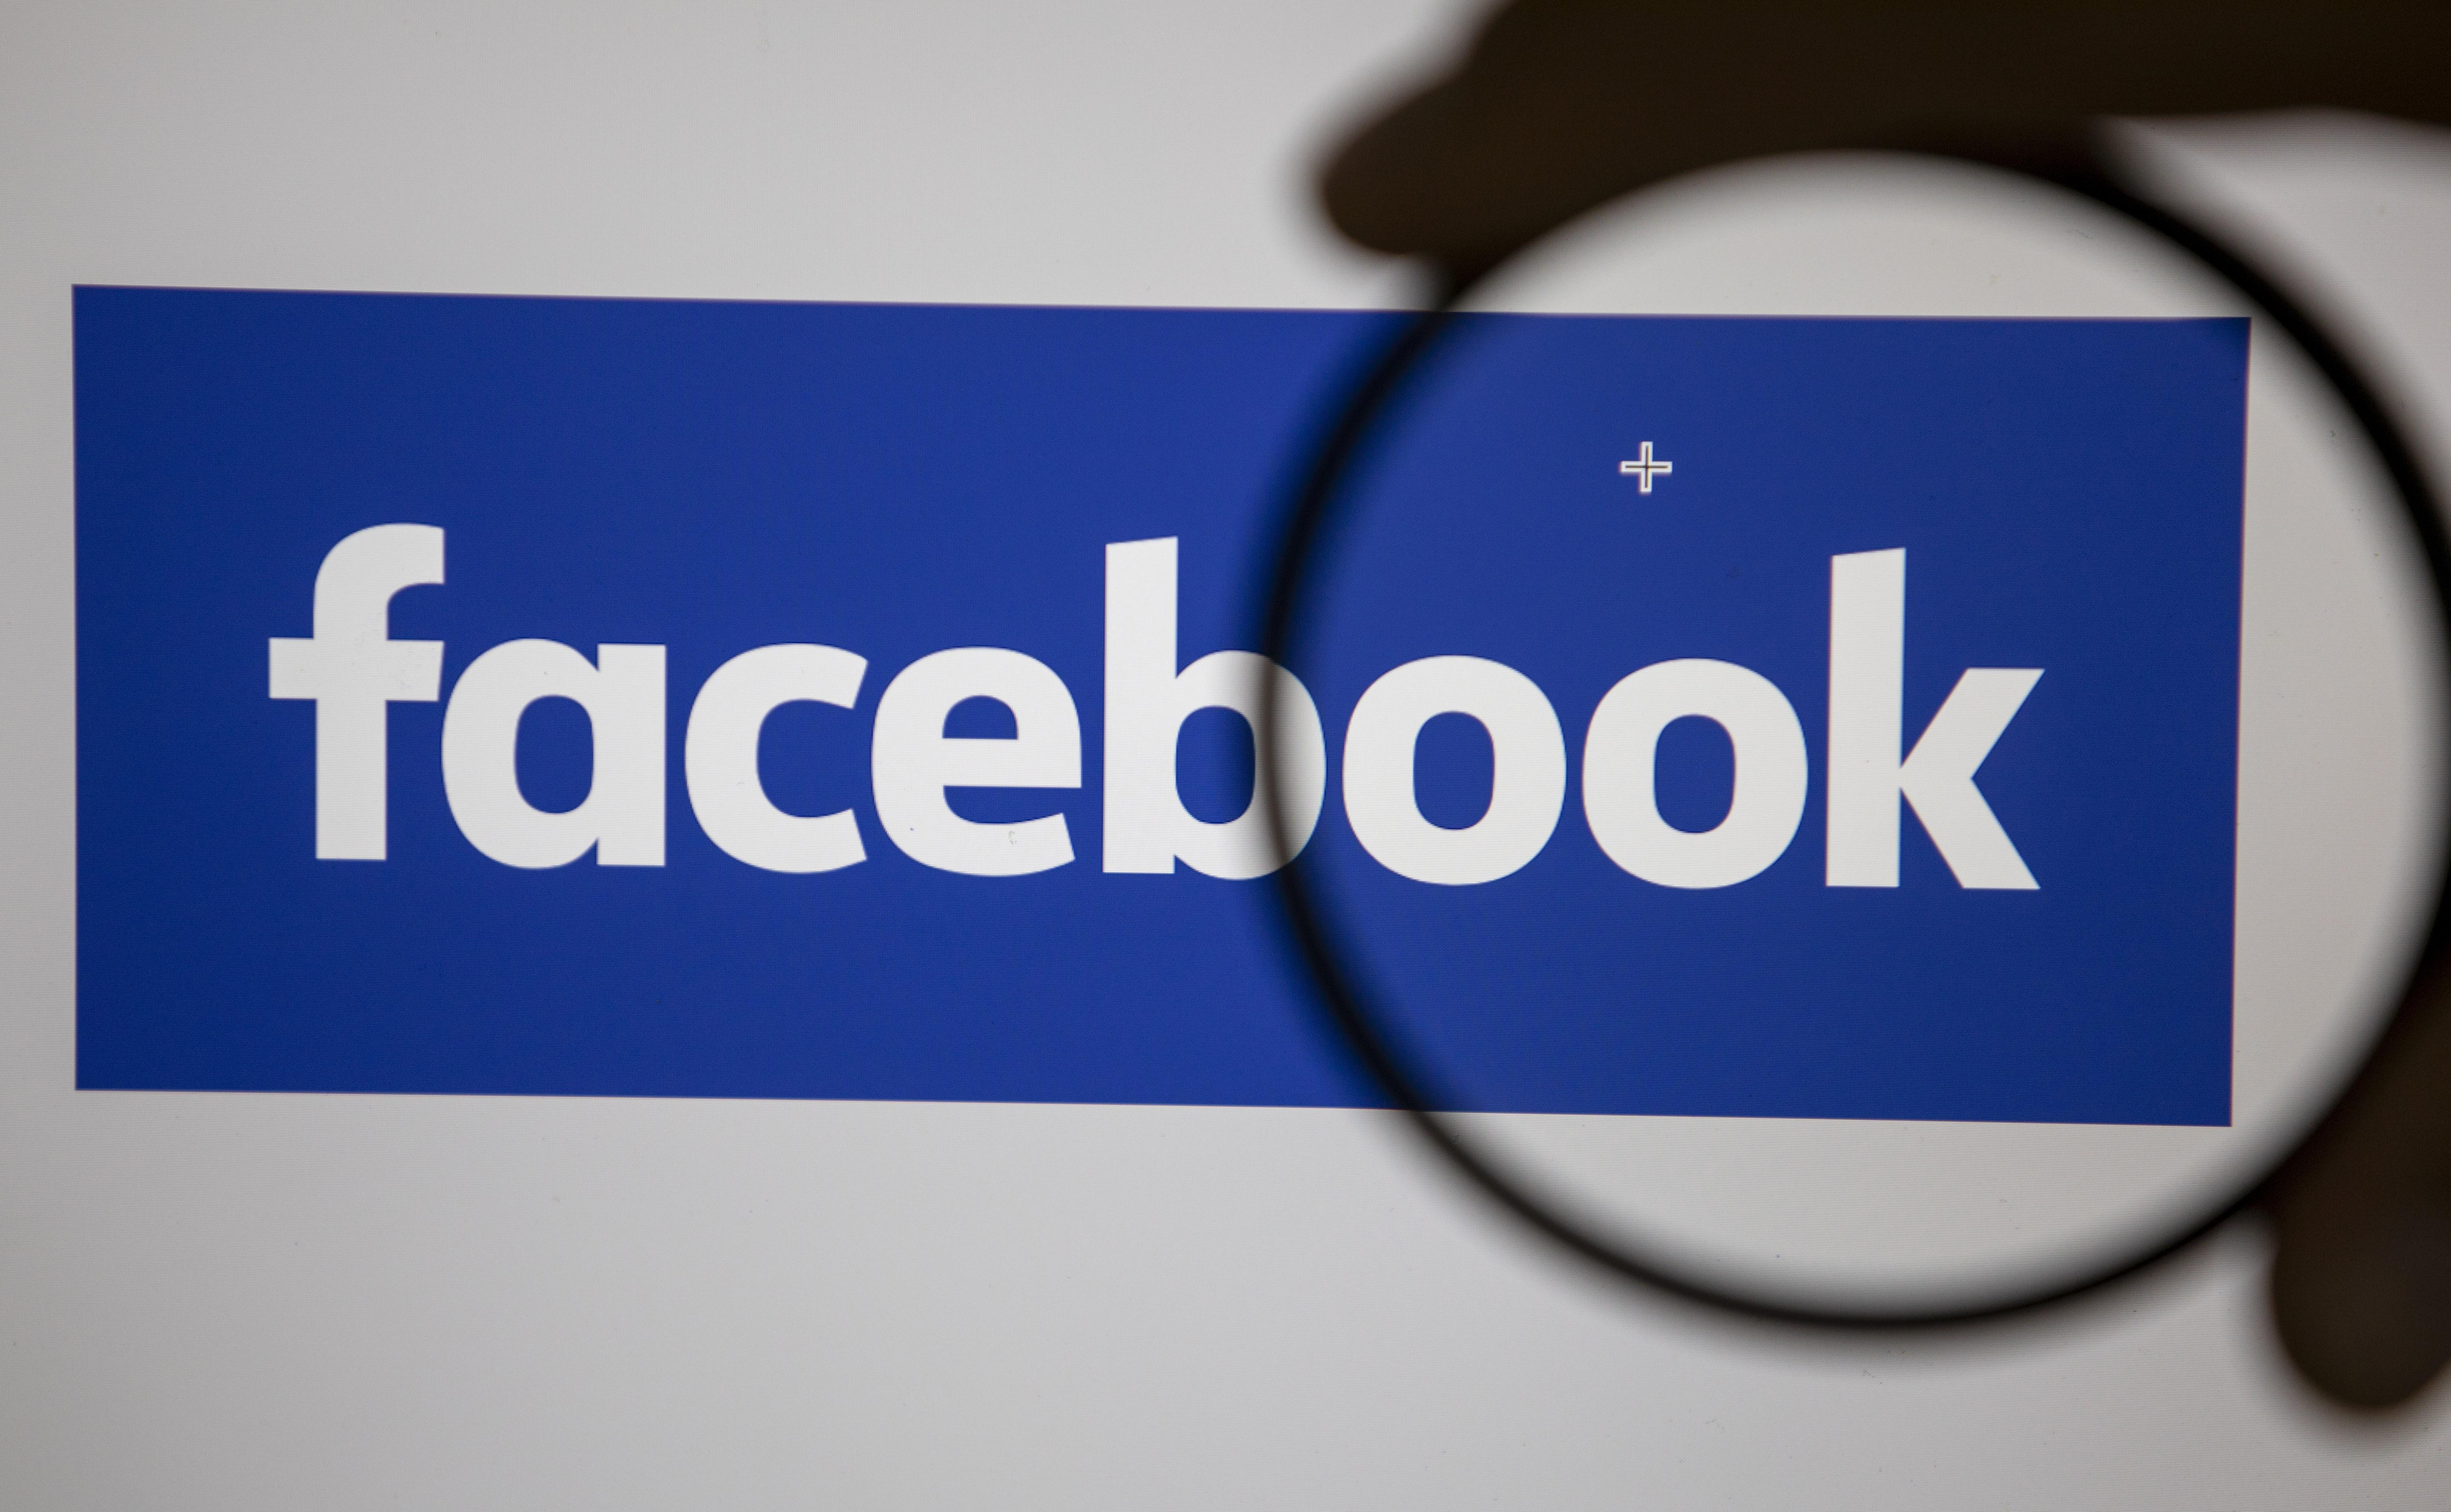 Worried Your Facebook Account Has Been Cloned? Here's What to Know About This New Hoax